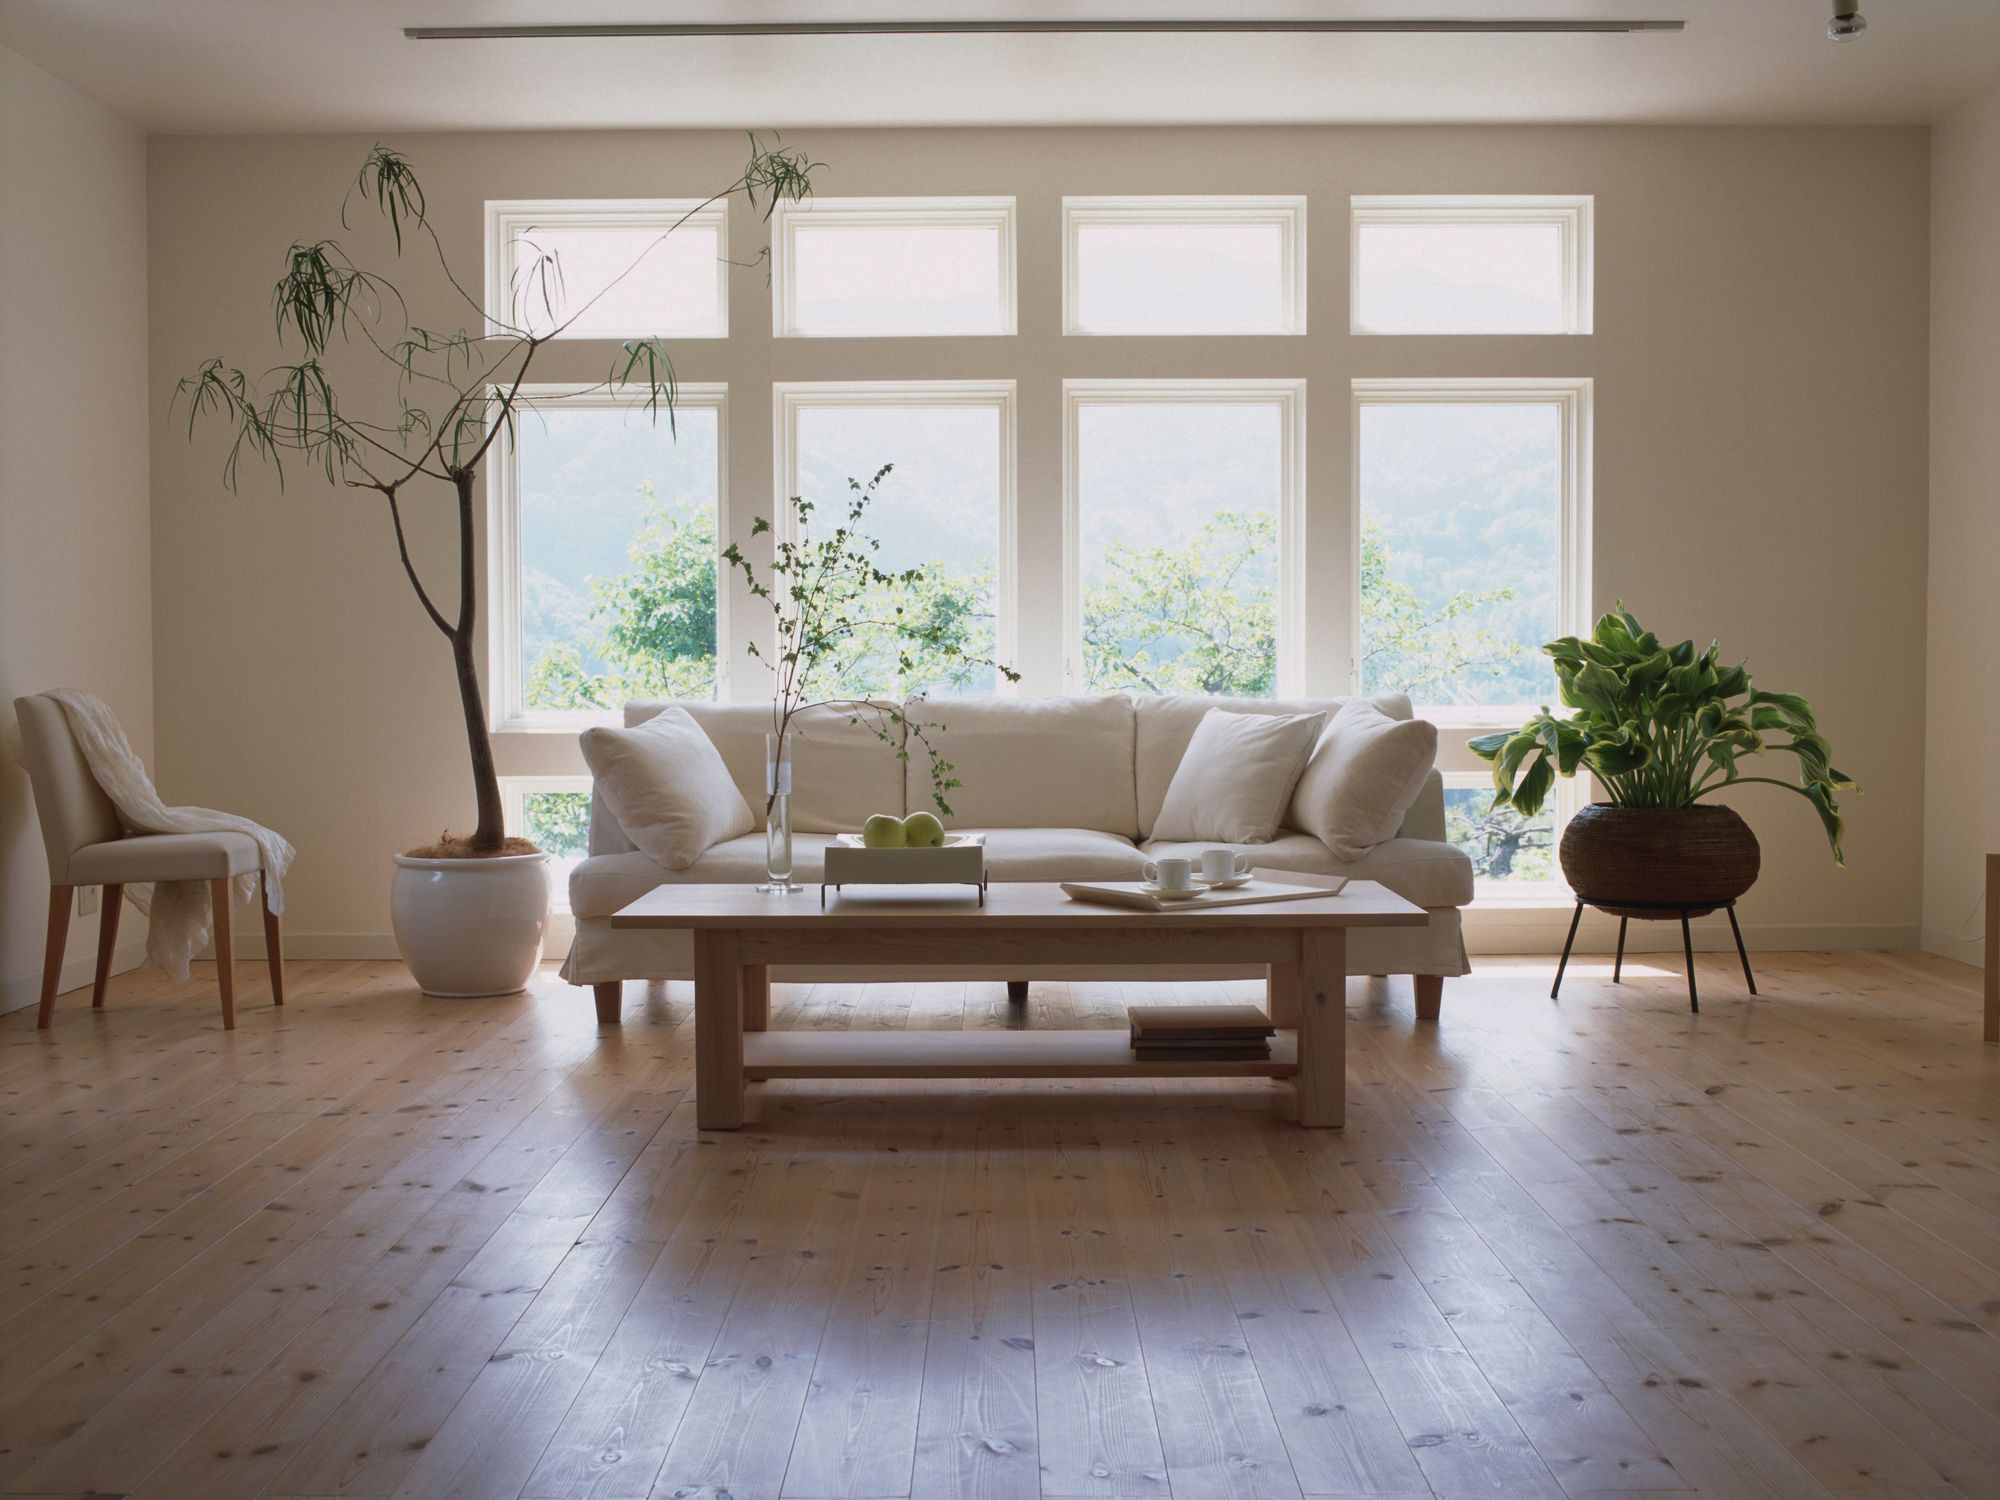 laminate hardwood flooring reviews of laminate flooring pros and cons with living room laminate floor gettyimages dexph070 001 58b5cc793df78cdcd8be2938